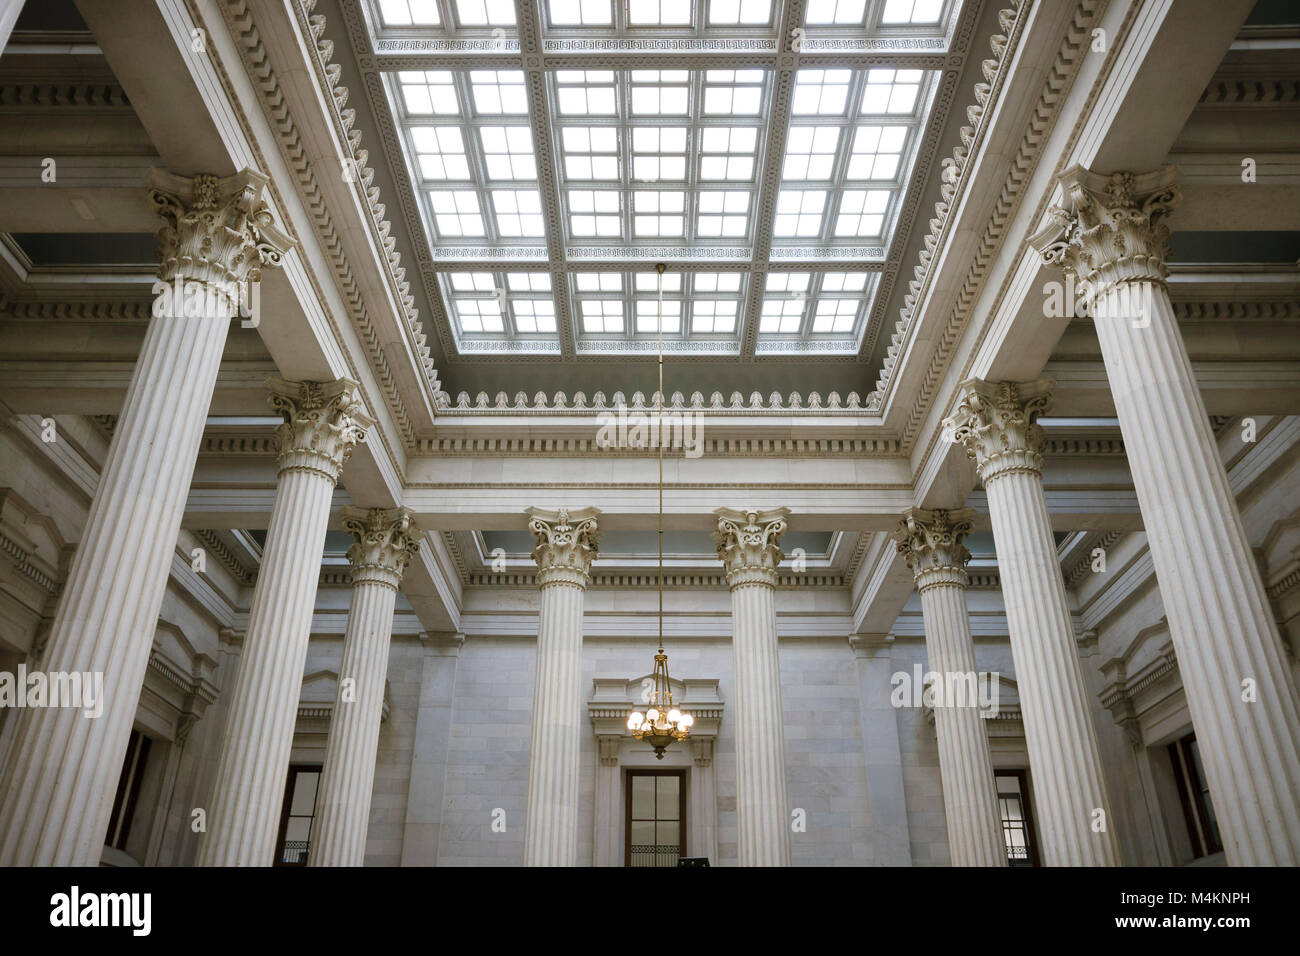 United States Custom House, New Orleans, Louisiana, by Alexander Thompson Wood and others, 1847-81. Interior hall - Stock Image